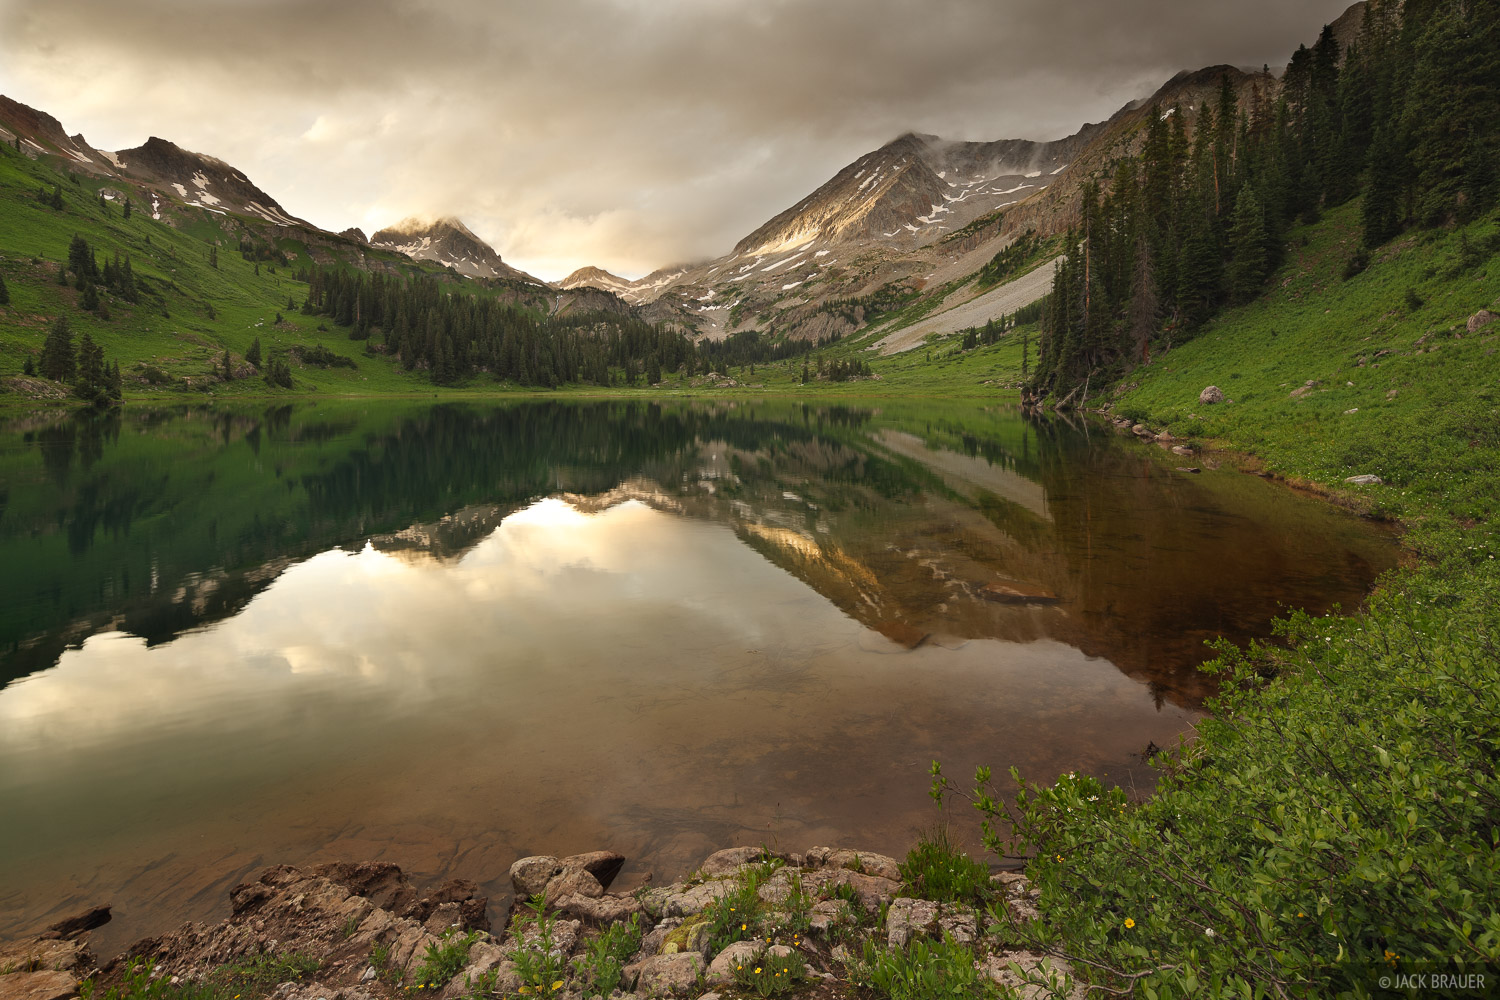 Geneva Lake, Snowmass Mountain, sunset, reflection, Elk Mountains, Colorado, Maroon Bells-Snowmass Wilderness, photo